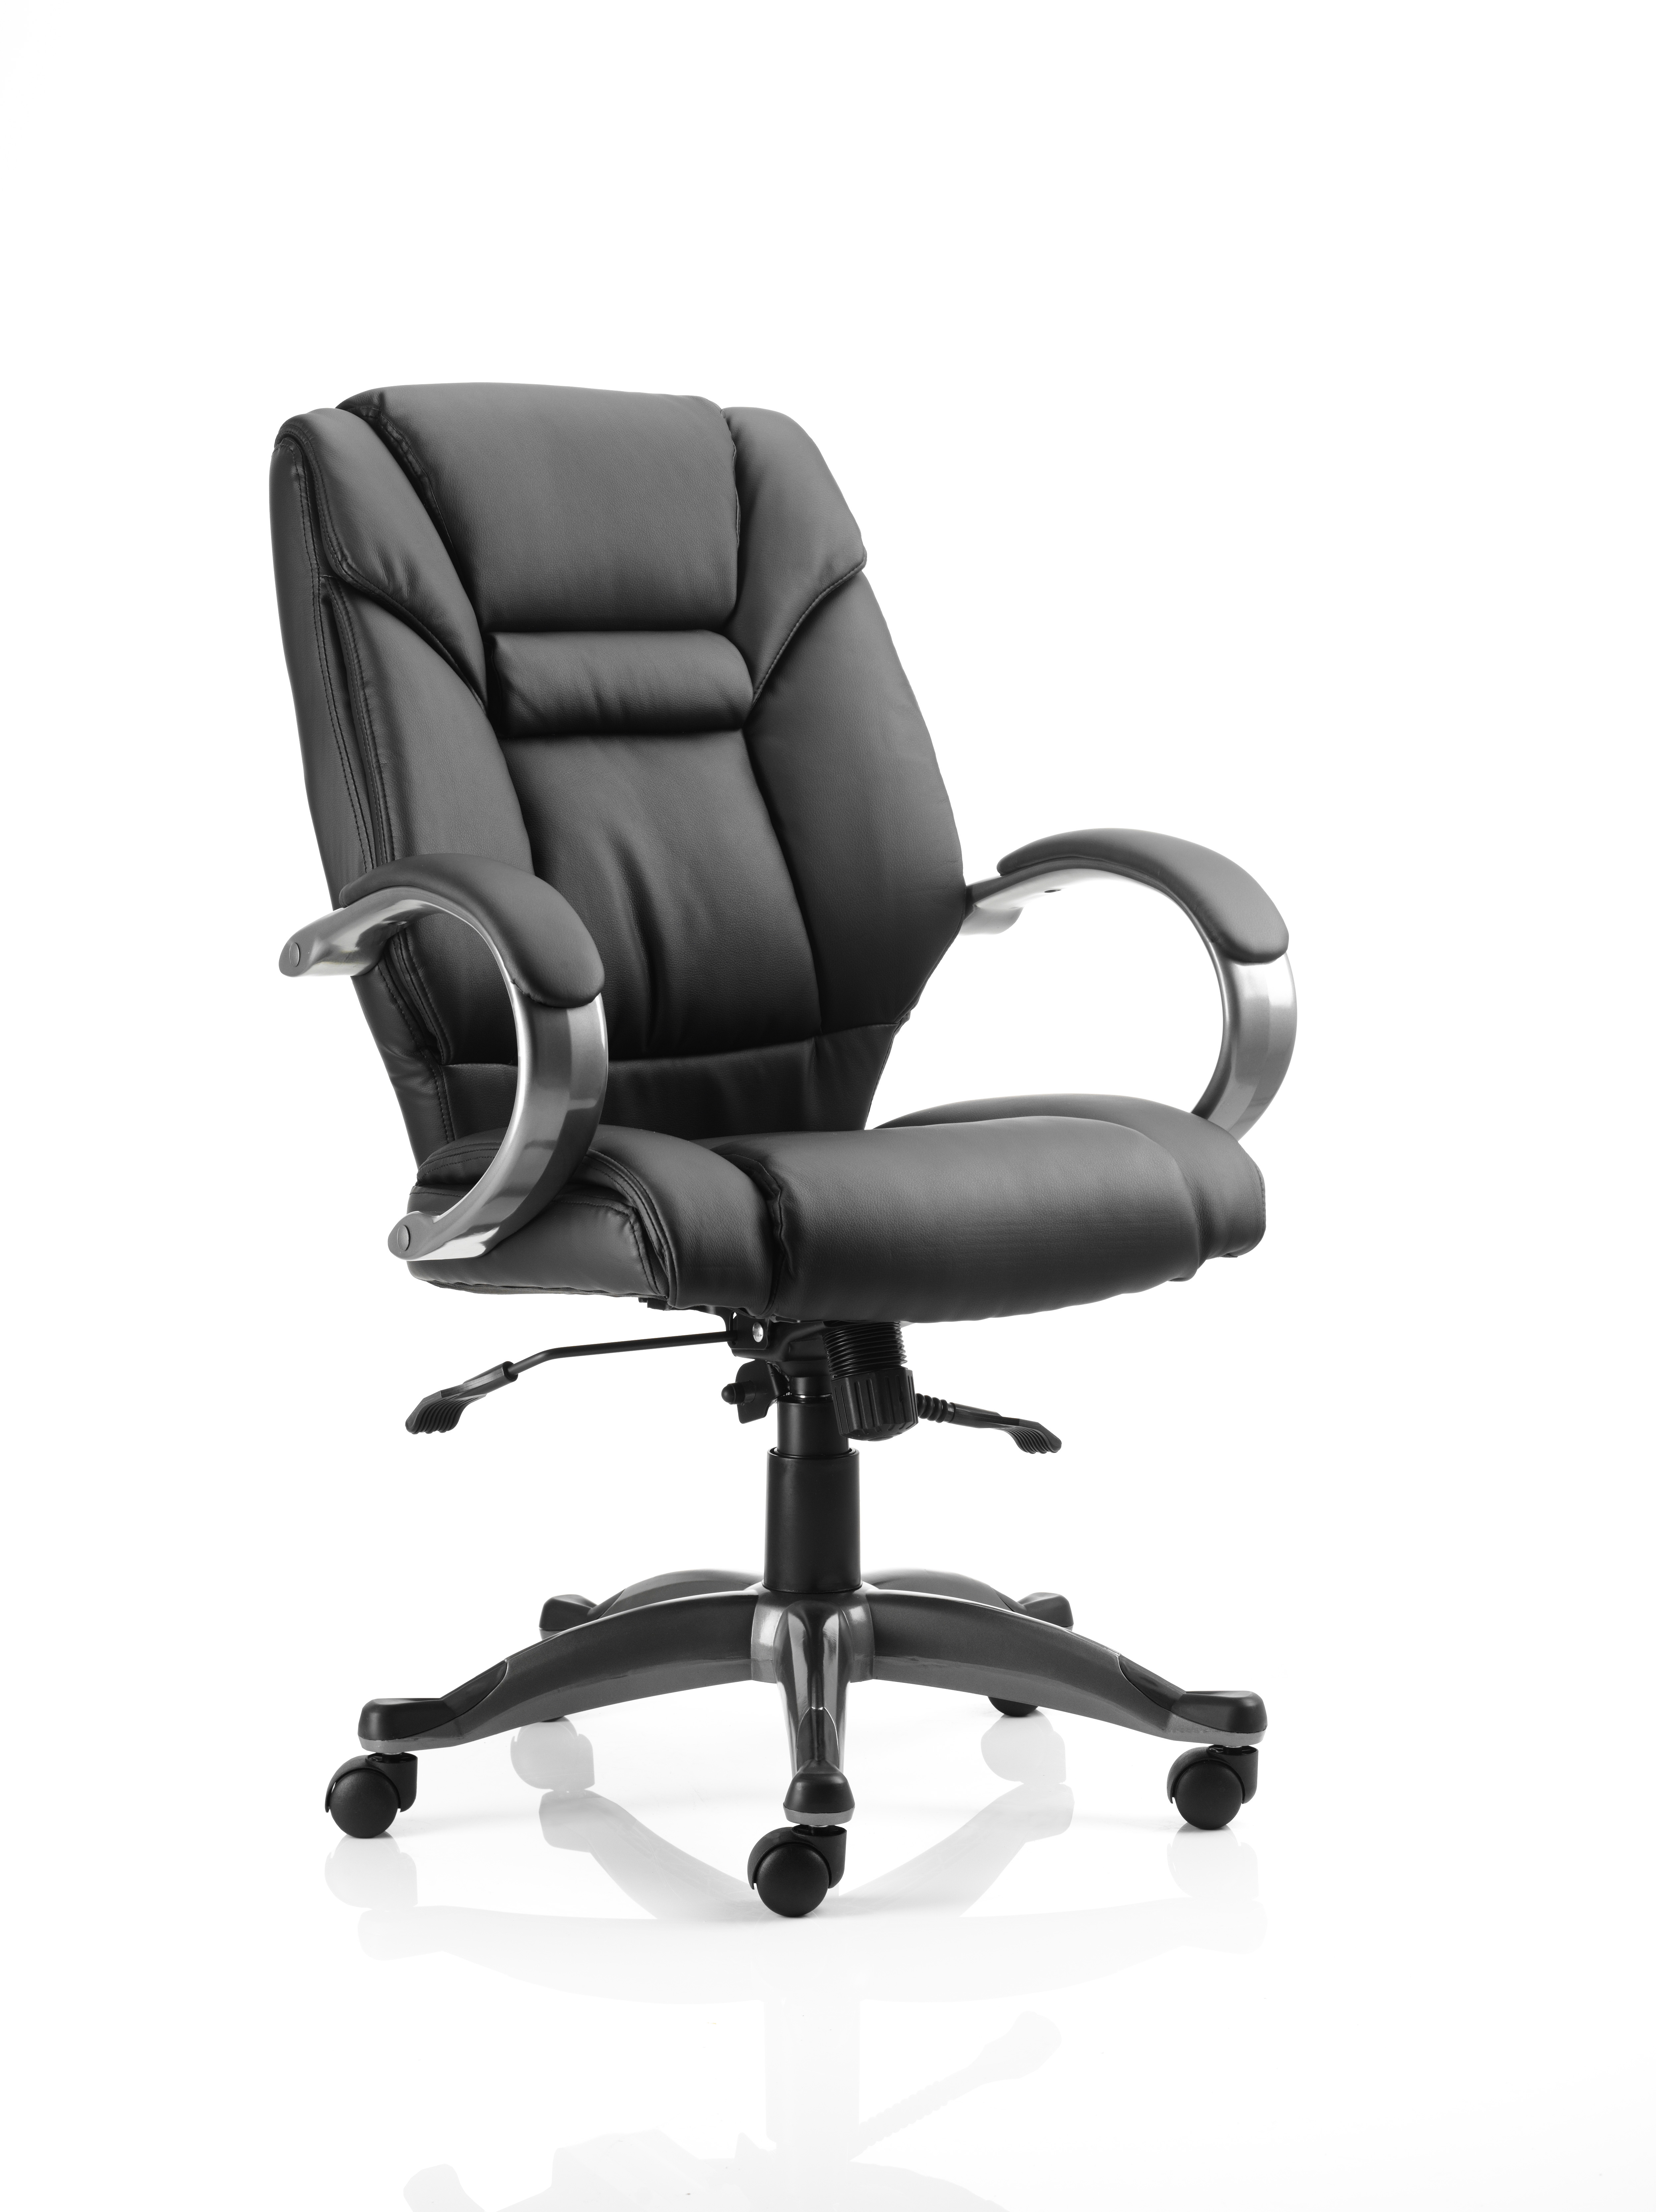 Executive Chairs Galloway Executive Chair Black Leather EX000134